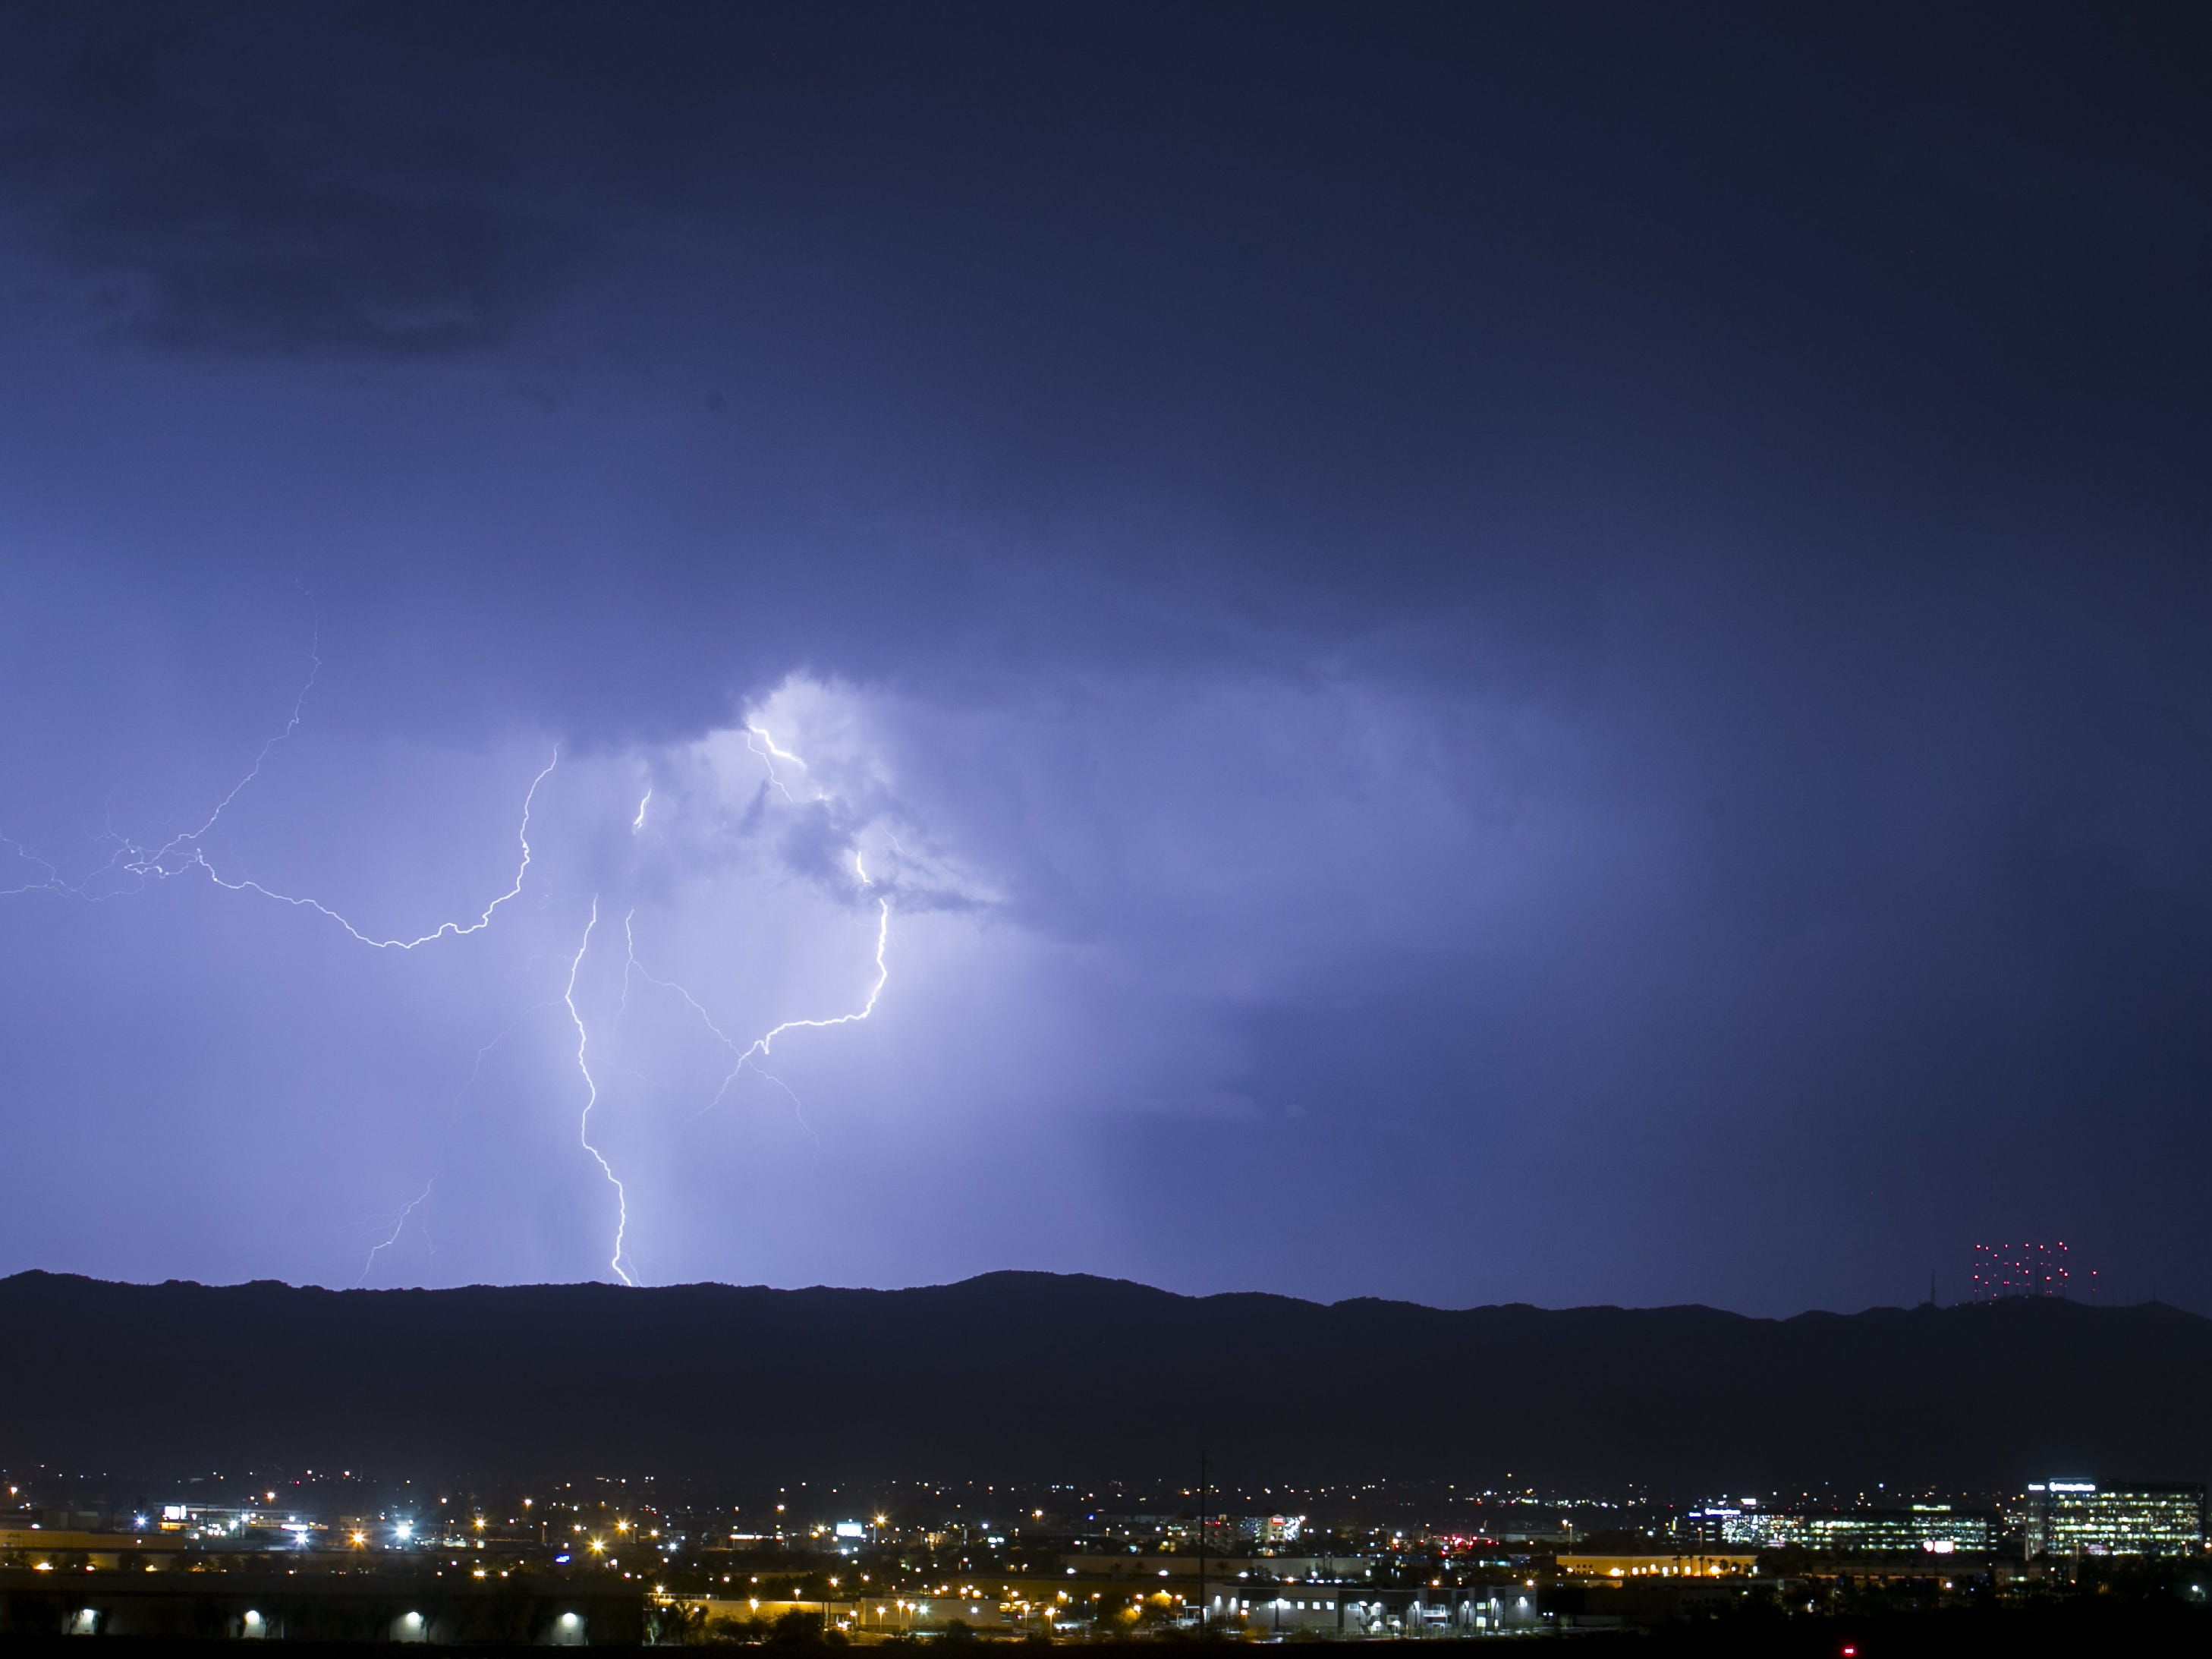 Lightning strikes over South Mountain Park in Phoenix on Aug 7, 2018.